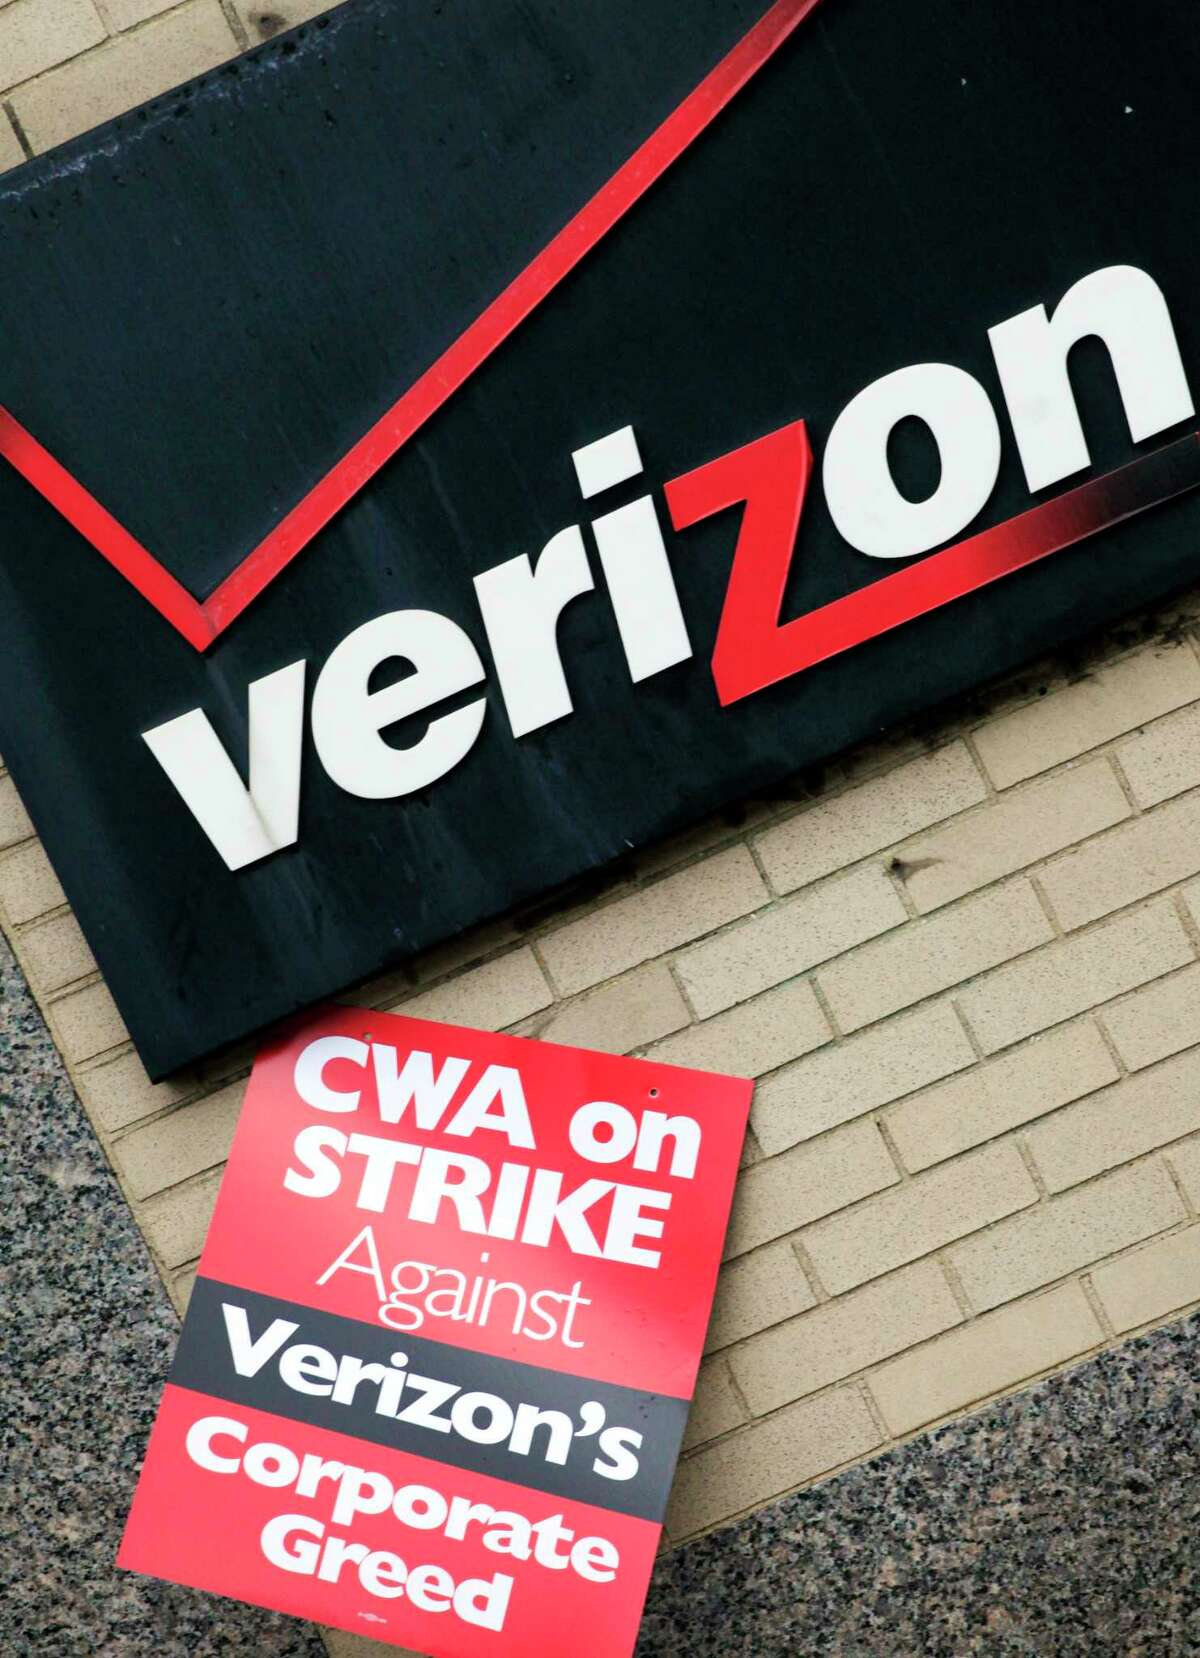 A contract covering 39,000 Verizon workers represented by two unions expired at the end of Saturday, Aug. 1.